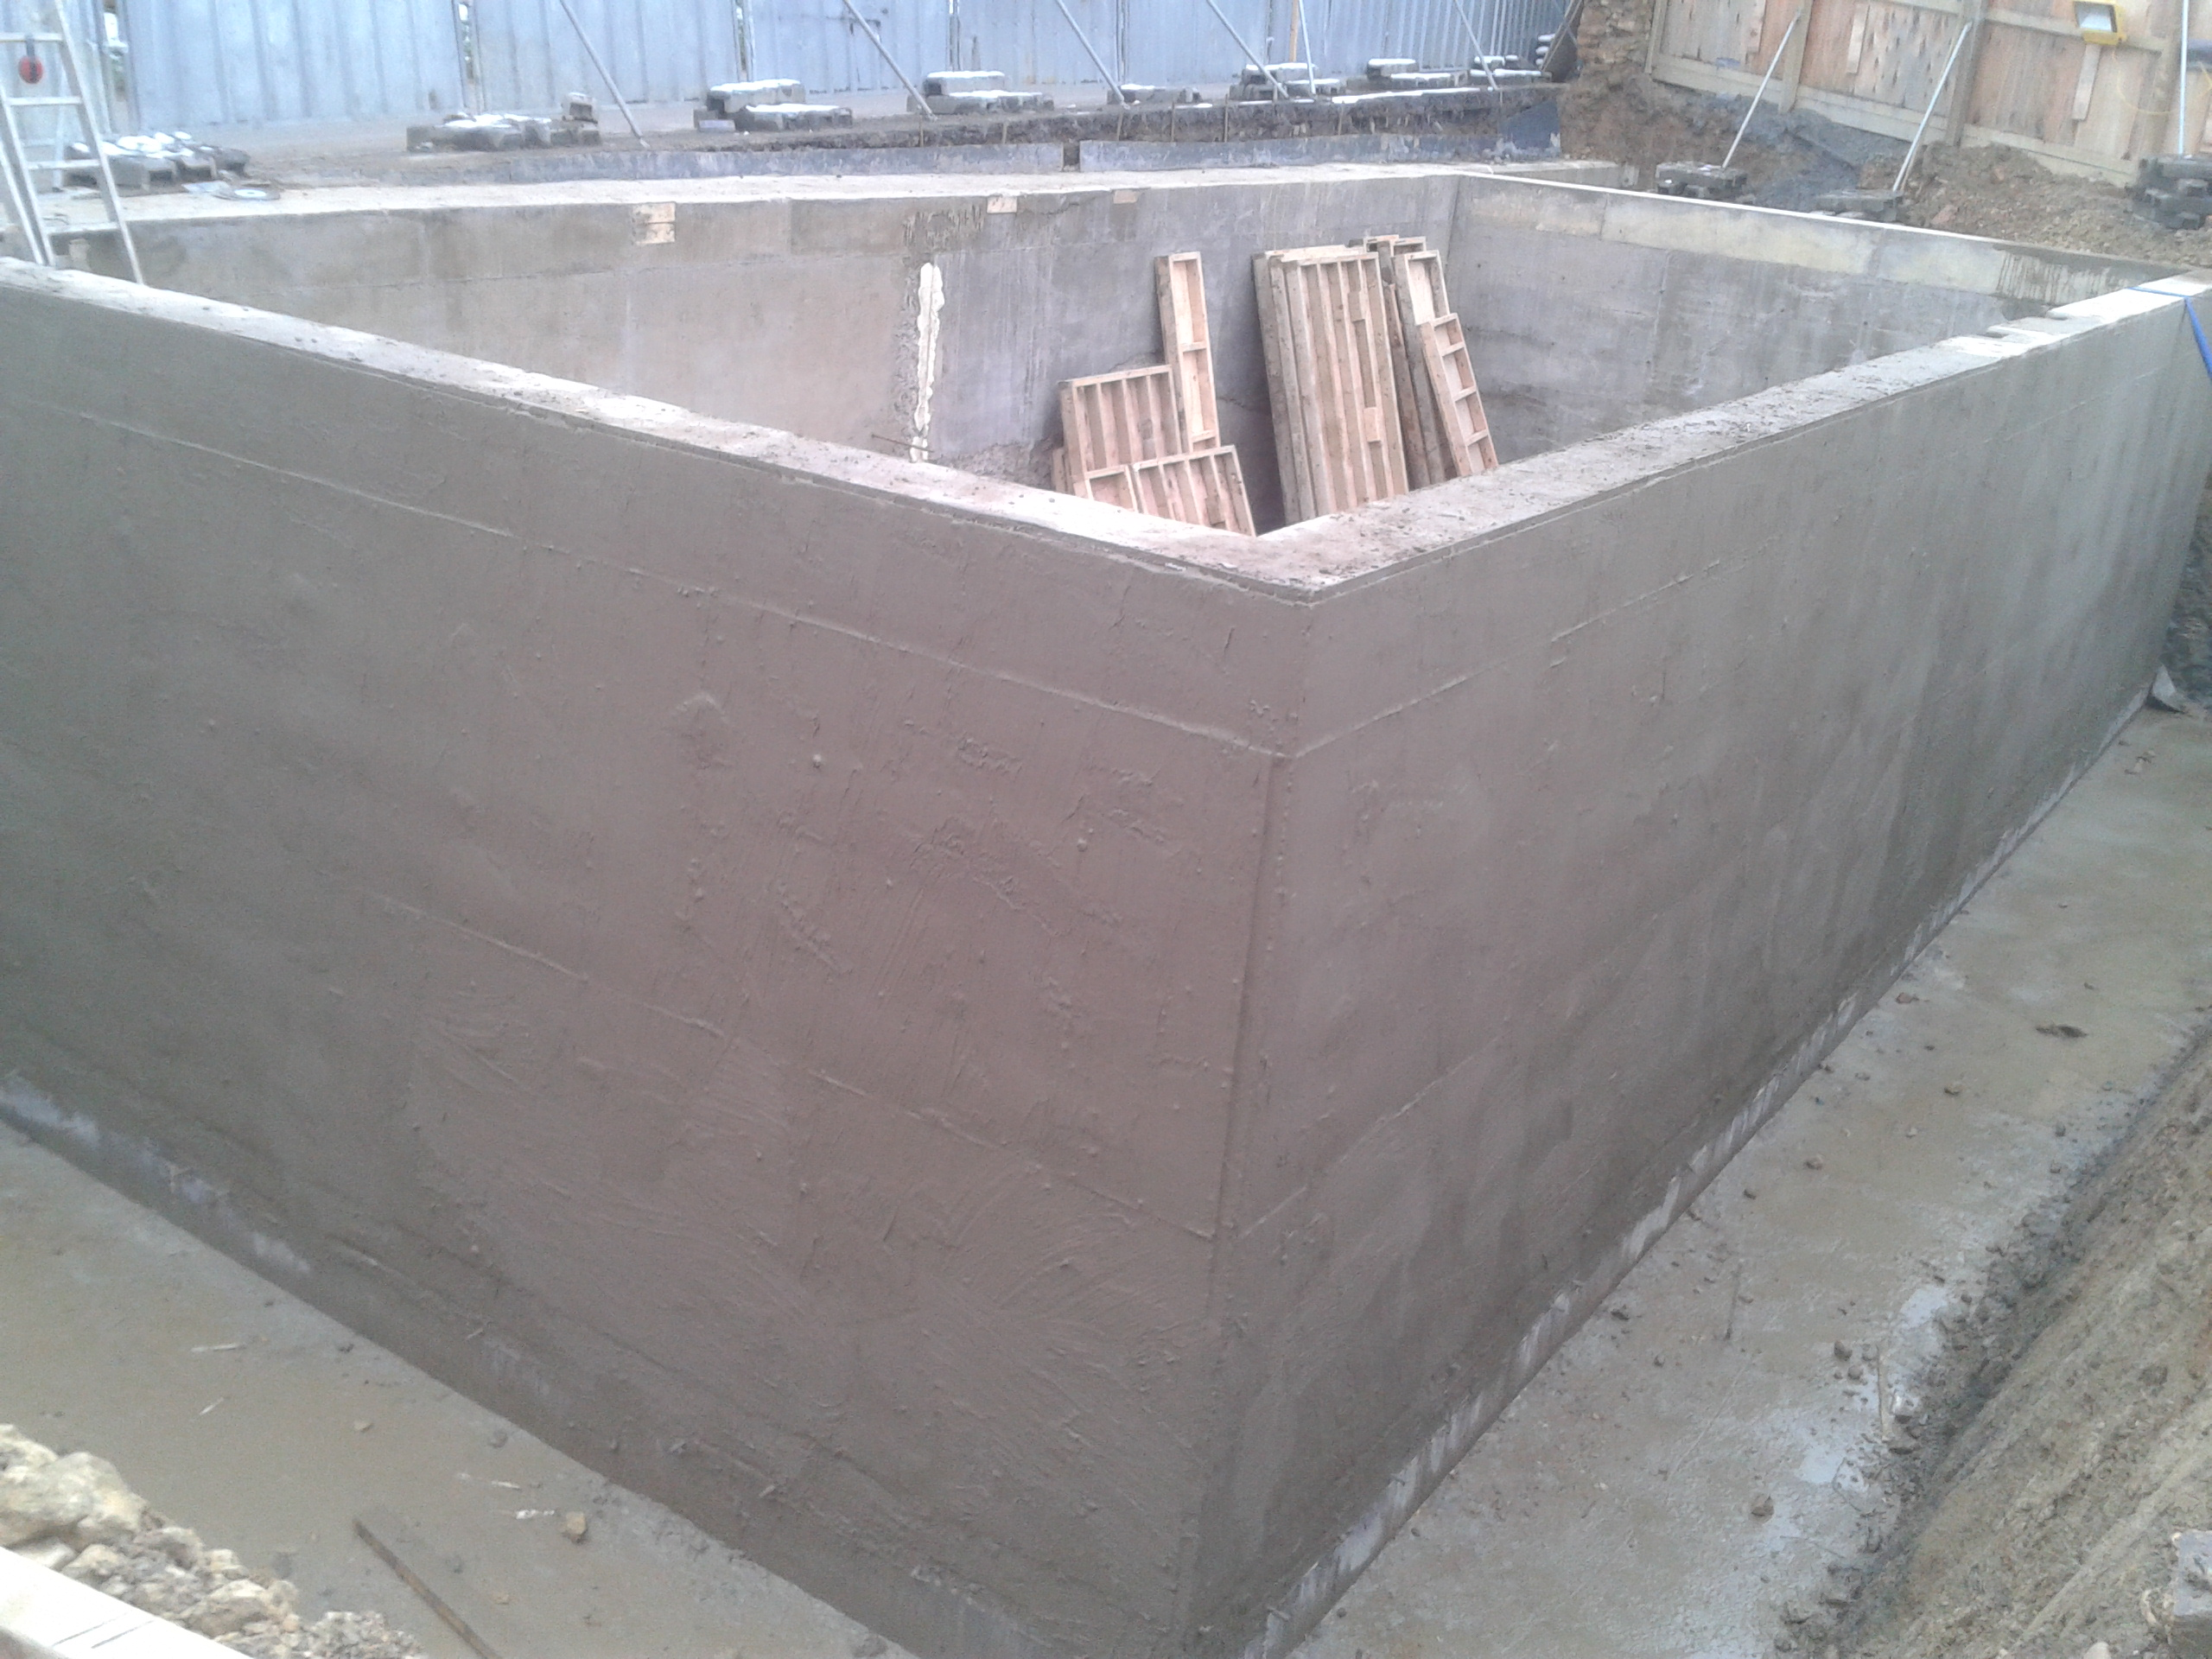 Cementitious slurry applied externally